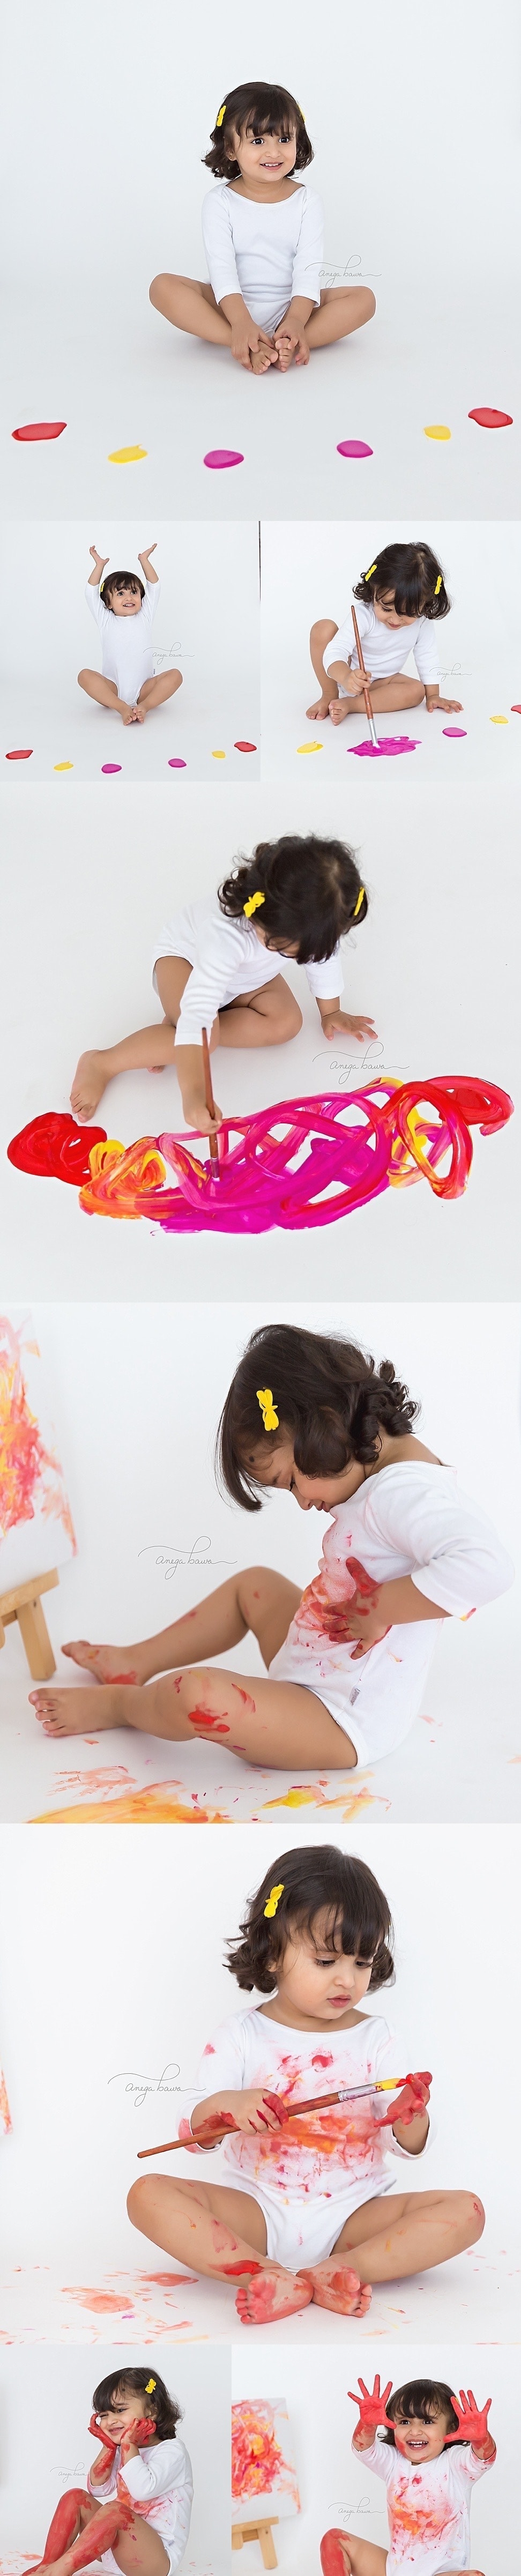 toddler_session_051-2-years-girl-paint-smash